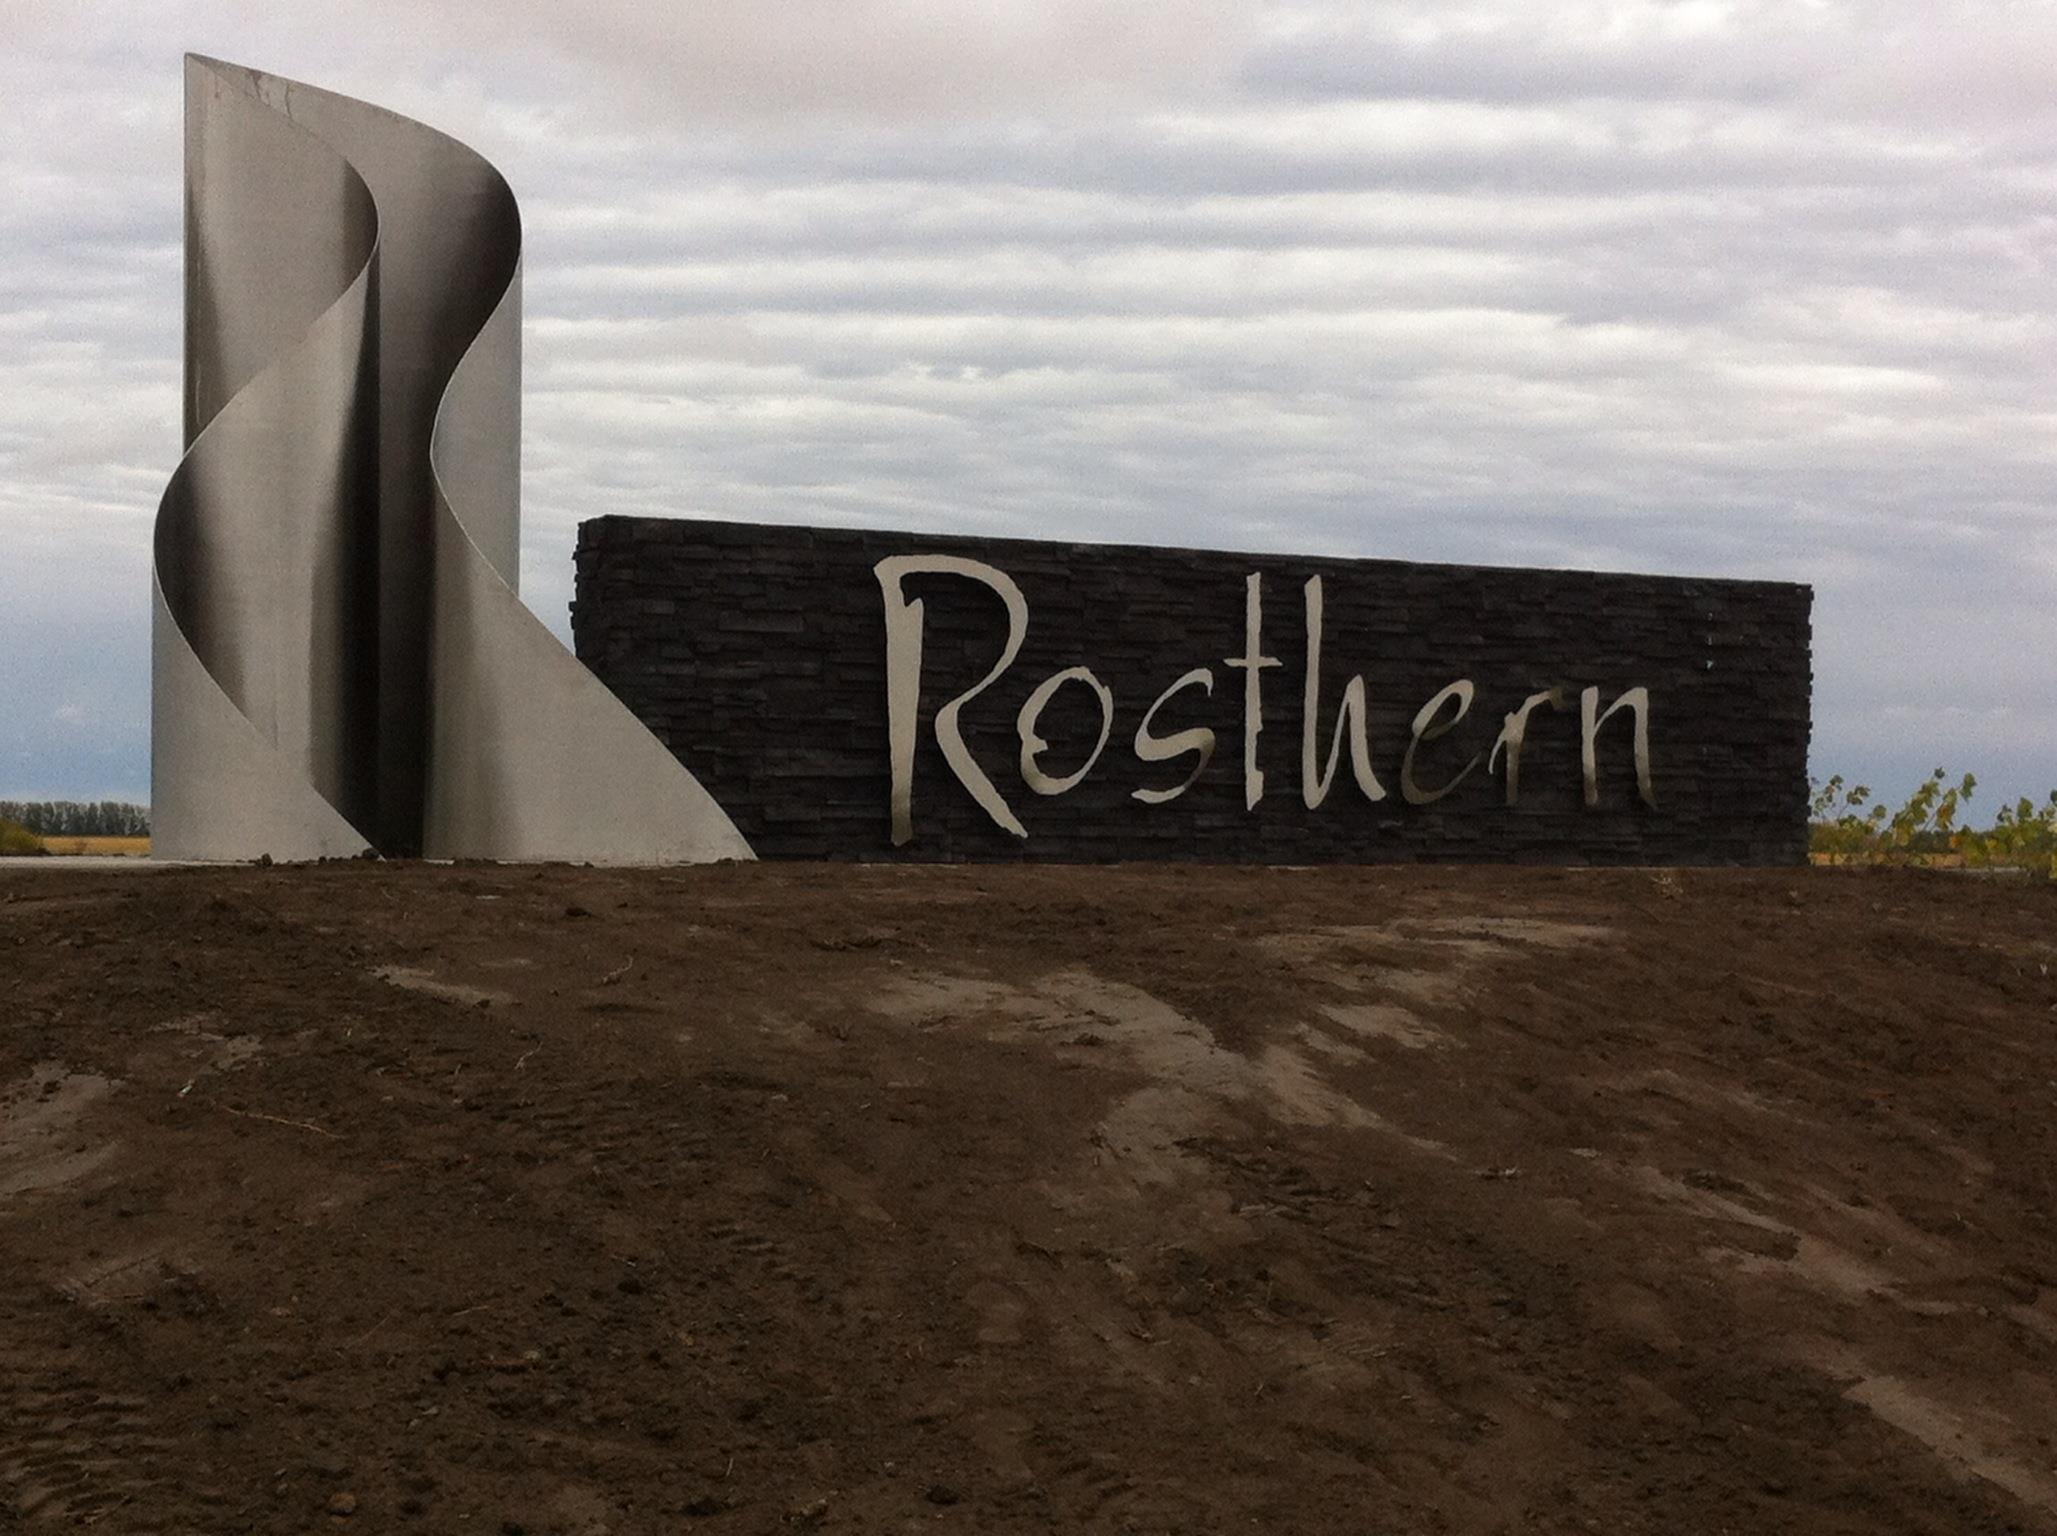 Town of Rosthern